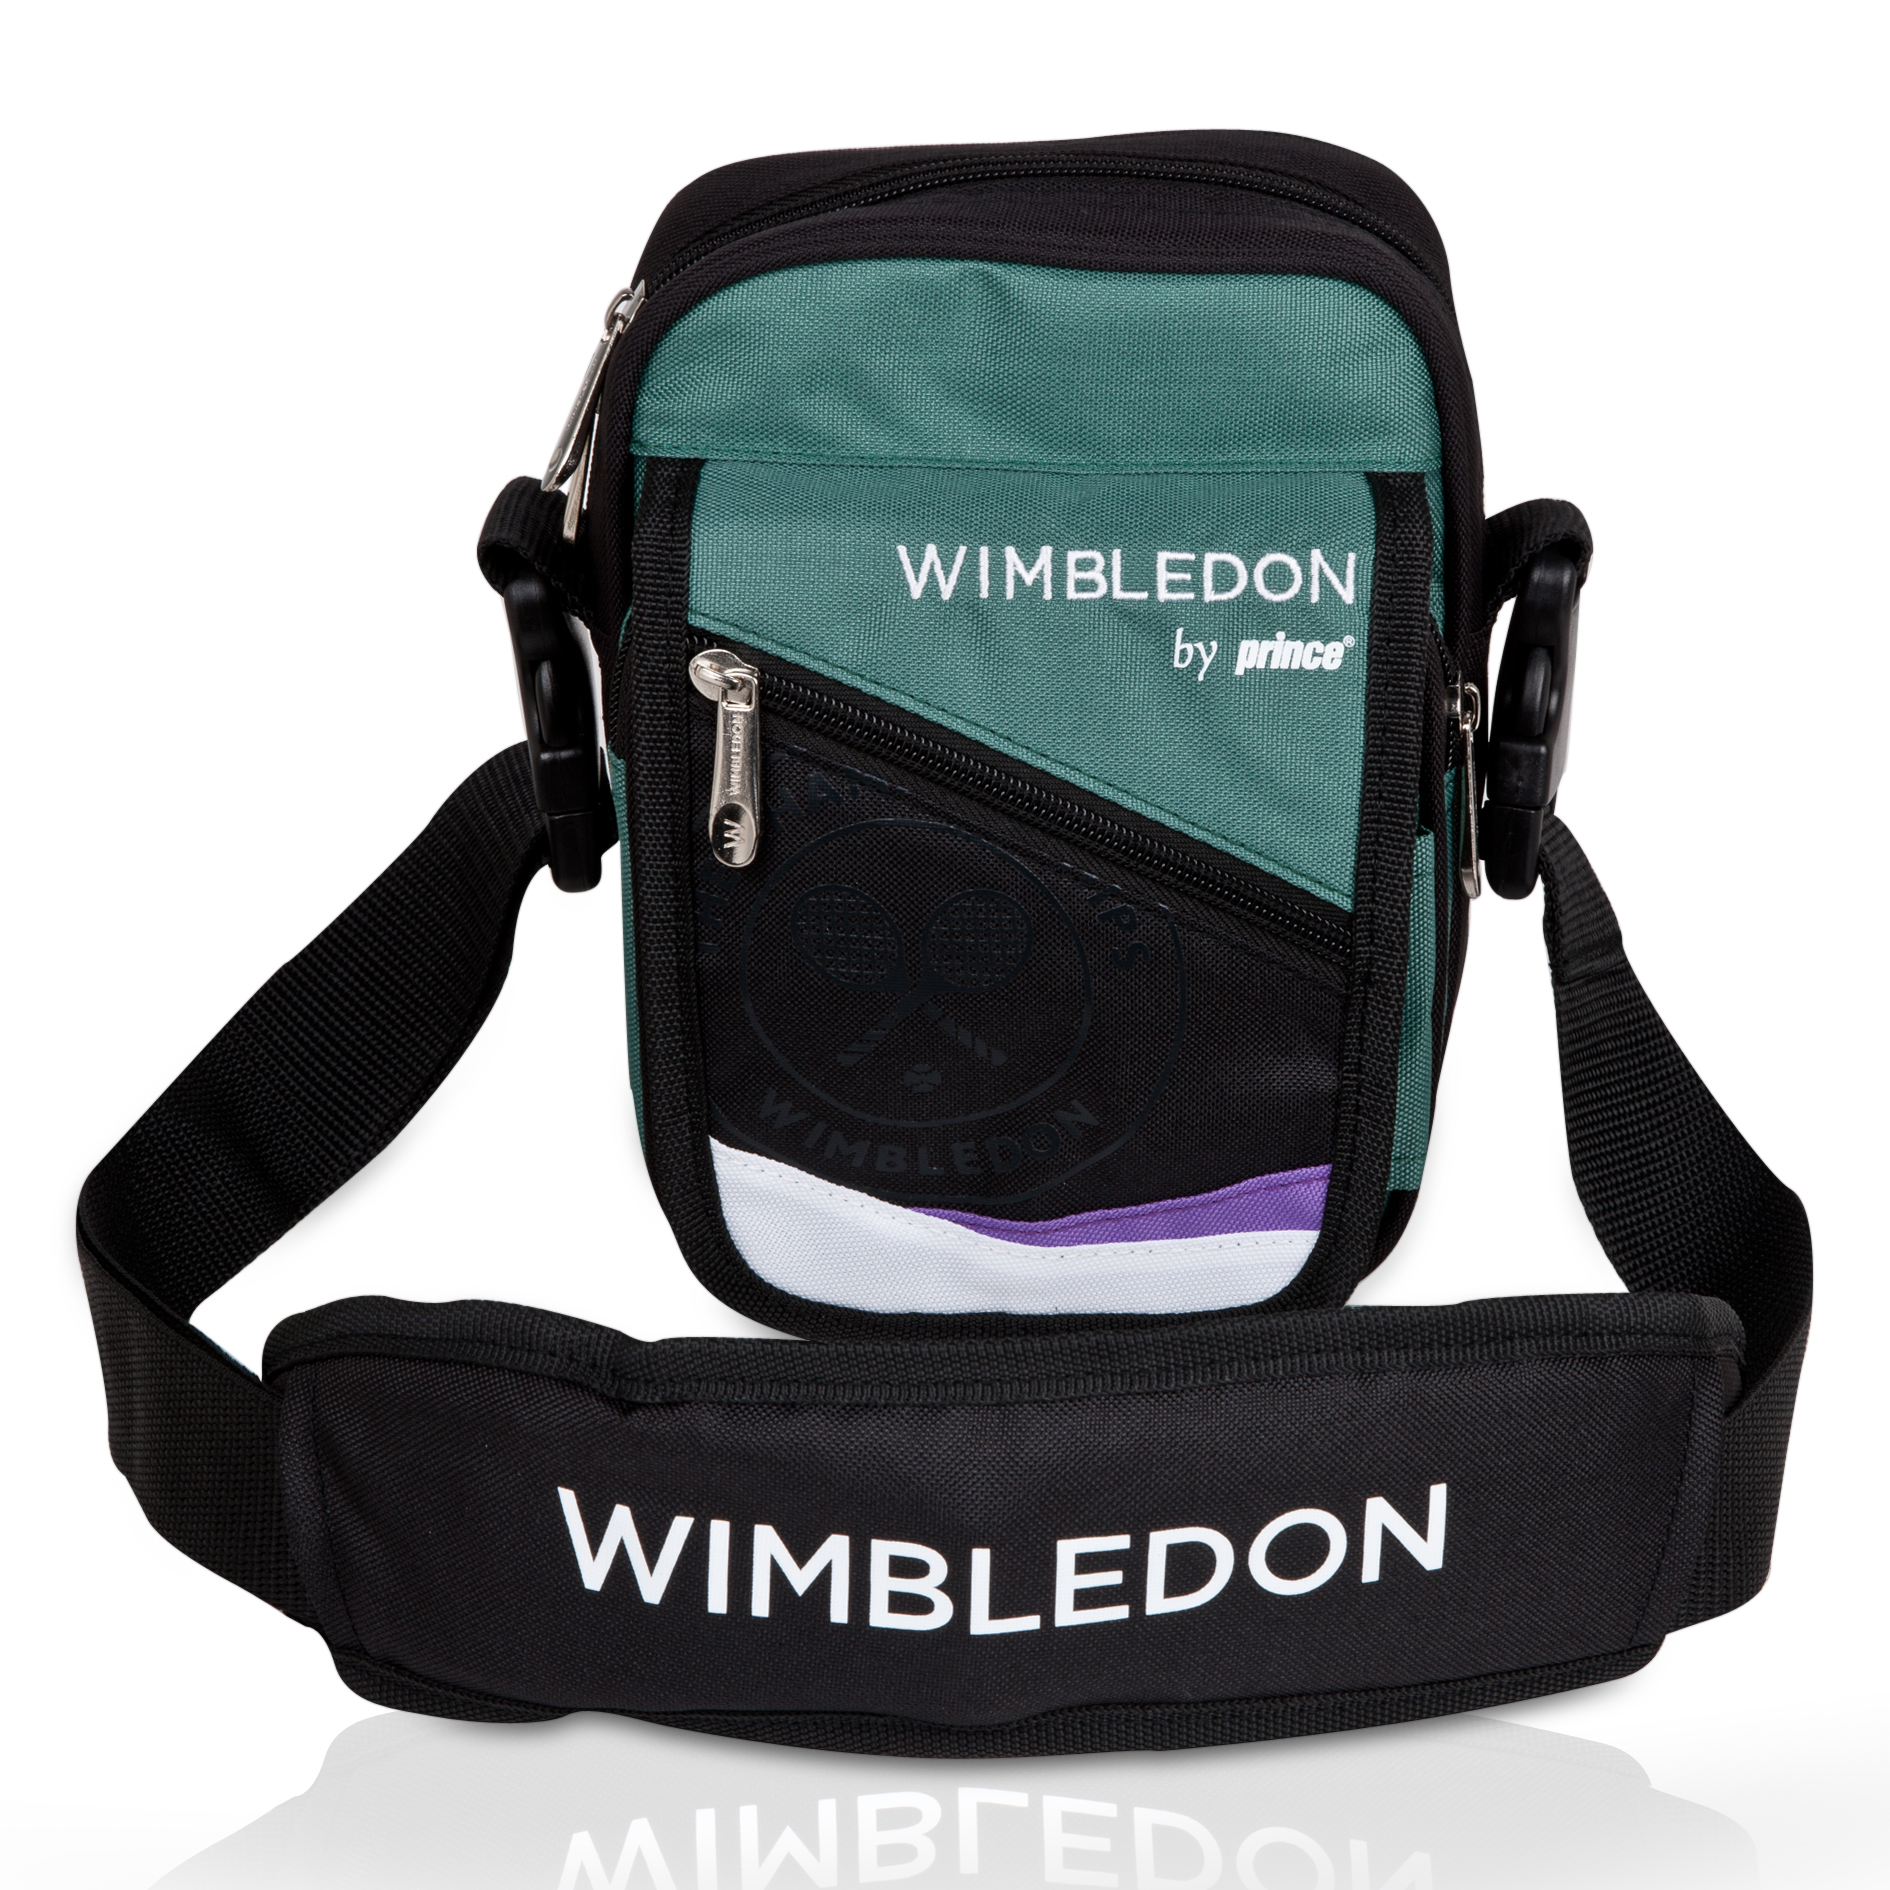 Wimbledon By Prince Grass Court Collection Spree Bag